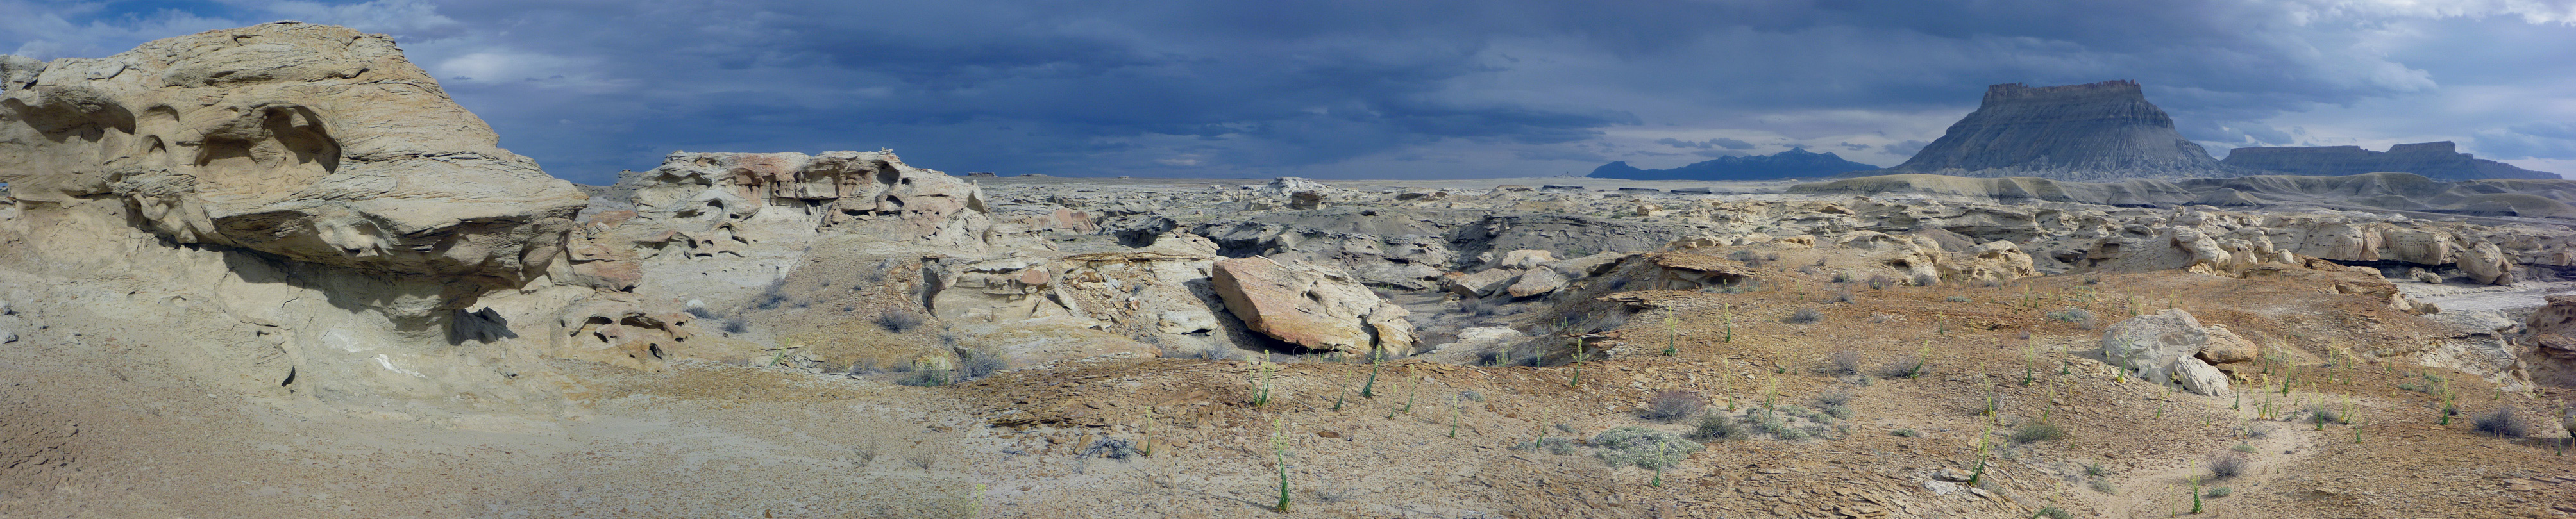 Eroded rocks northwest of Factory Butte